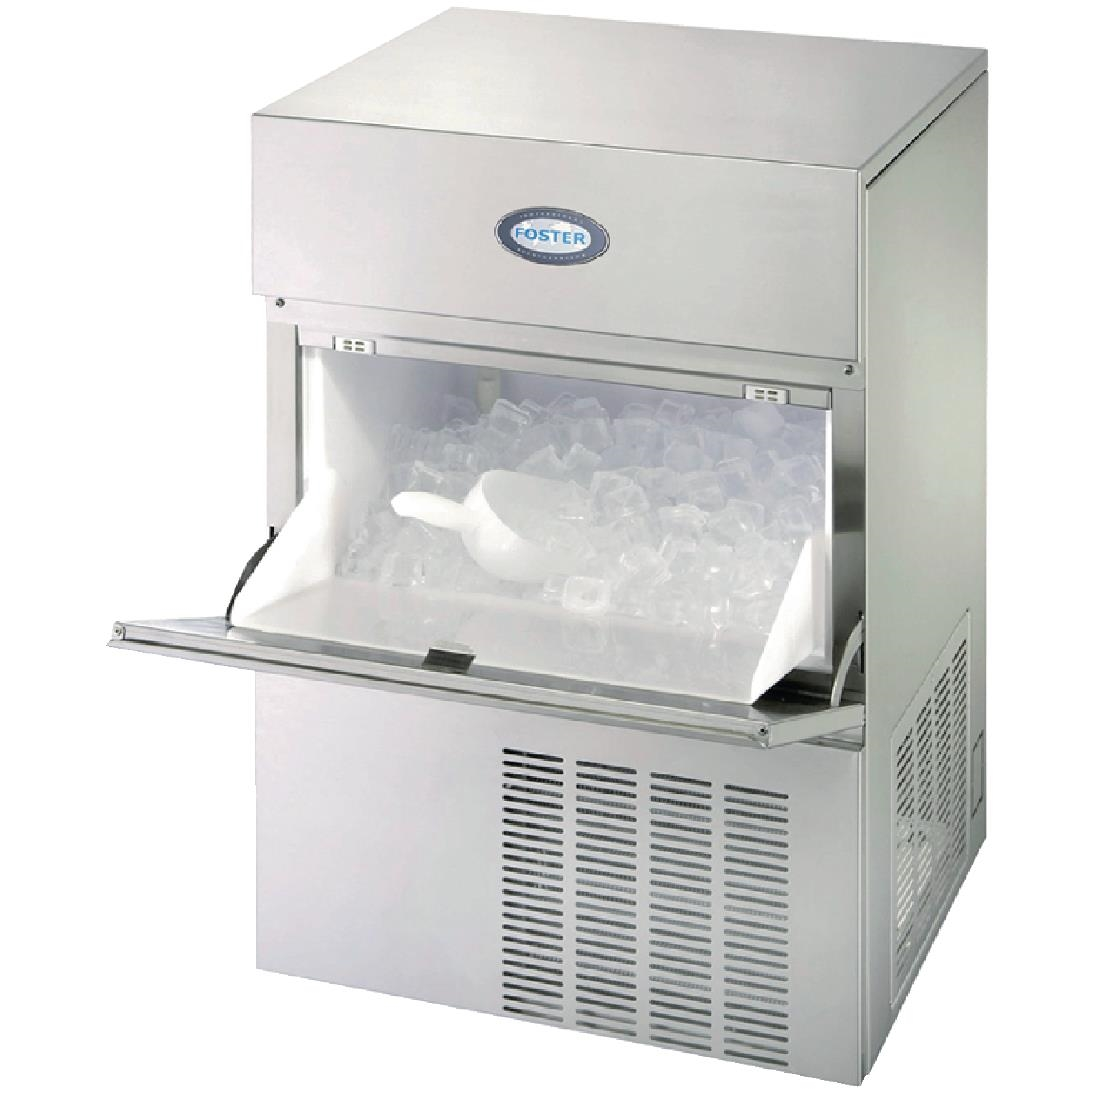 Image of Foster Air-Cooled Integral Ice Maker FS40 27/106